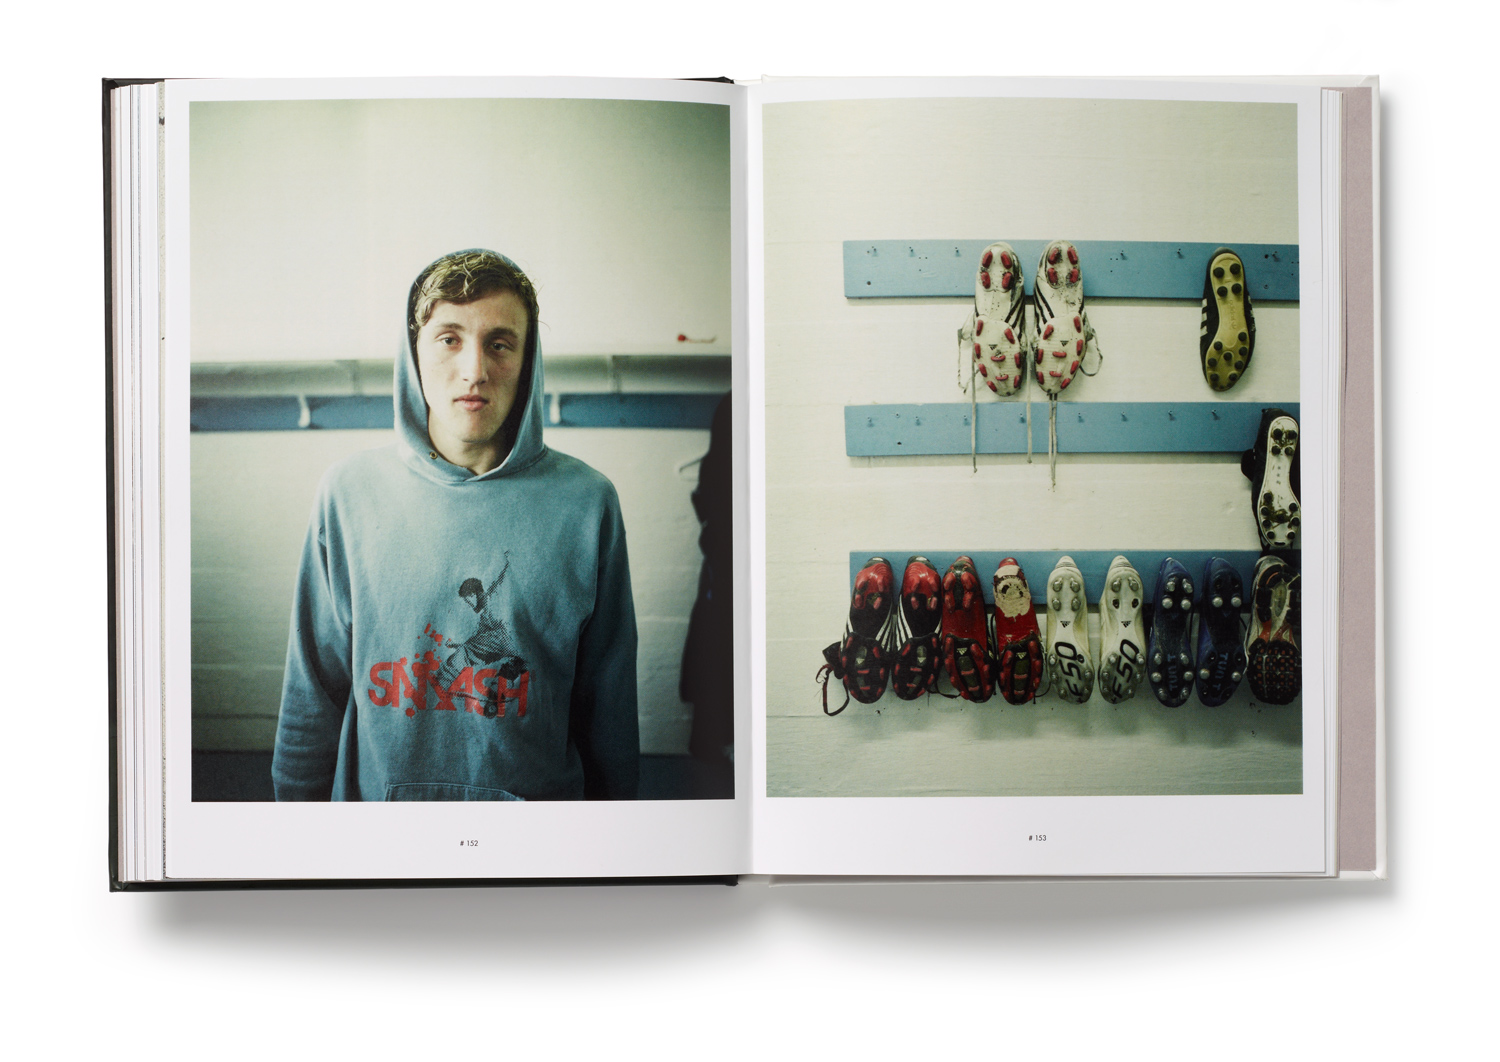 An inside spread from Rafal Milach's In The Car with R, which is part of a group project about Iceland, done by Polish photographers from collective Sputnik Photos during 2010. Five Polish photographers and five Icelandic writers have been working together to show their view on contemporary Iceland through personal, individual stories of Icelanders.